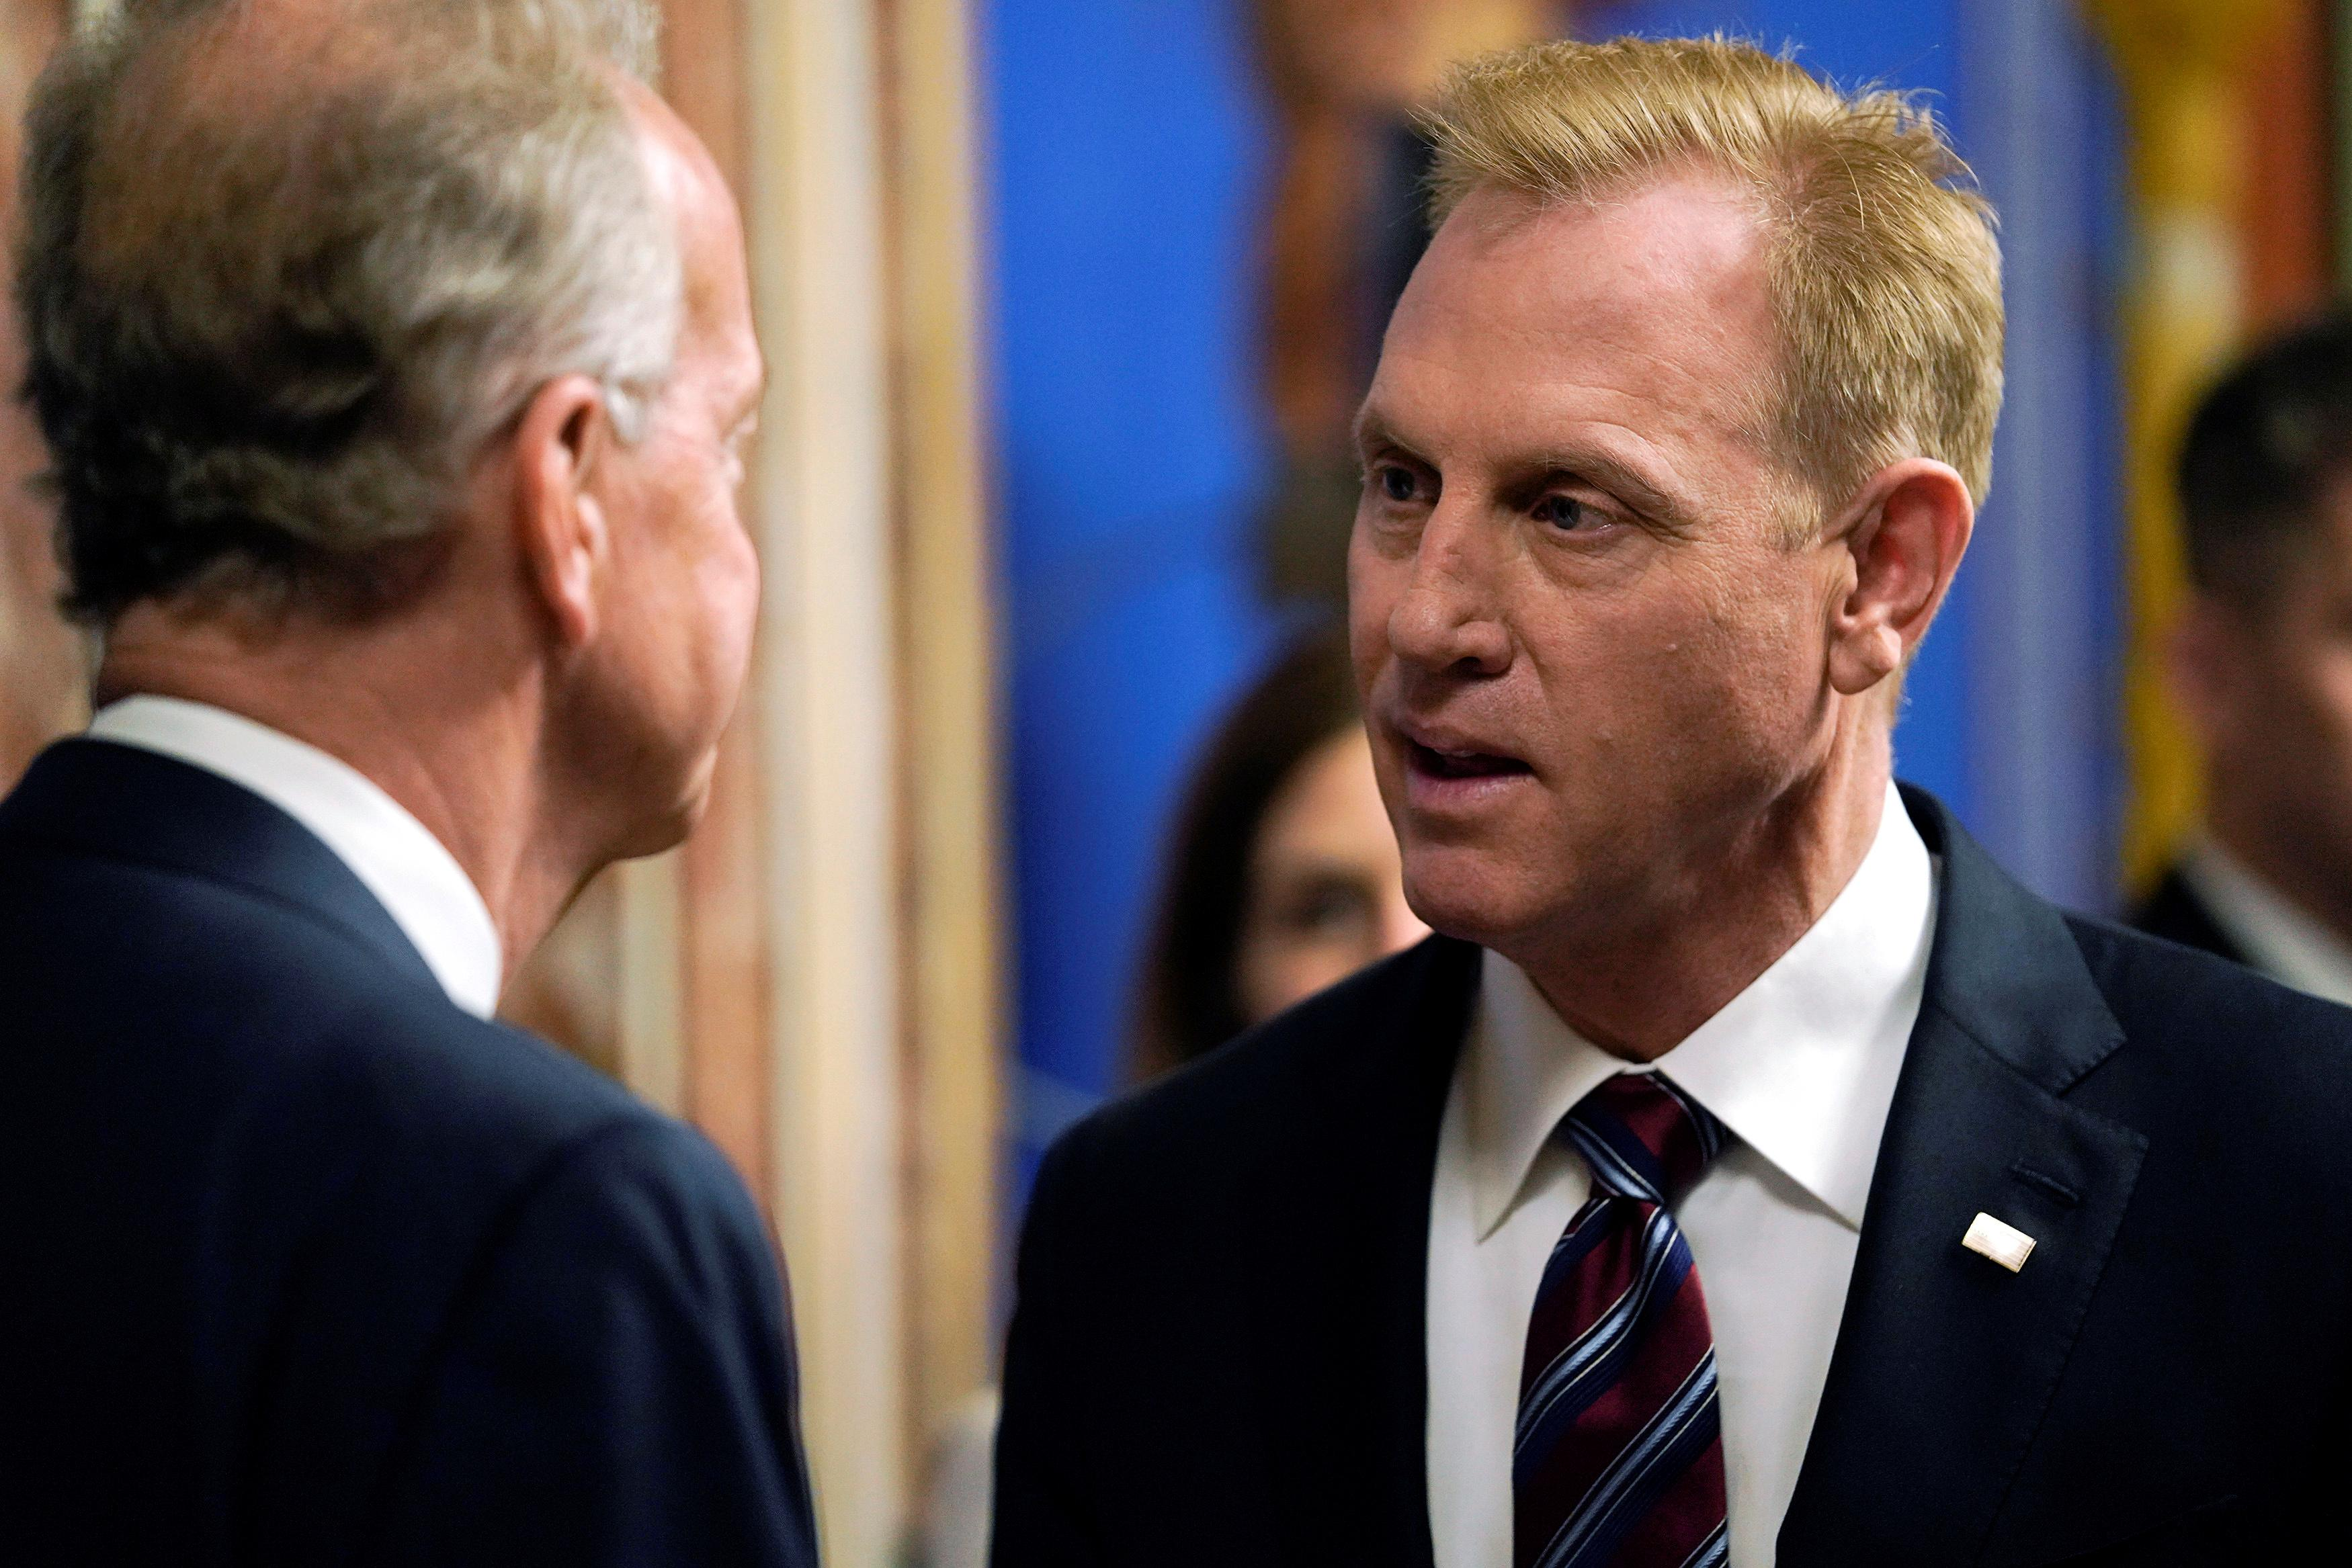 Acting Defense Secretary Patrick Shanahan arrives to testify before a Senate Appropriations Defense Subcommittee hearing on the proposed FY2020 budget for the Defense Department on Capitol Hill in Washington, U.S., May 8, 2019. Aaron P. Bernstein